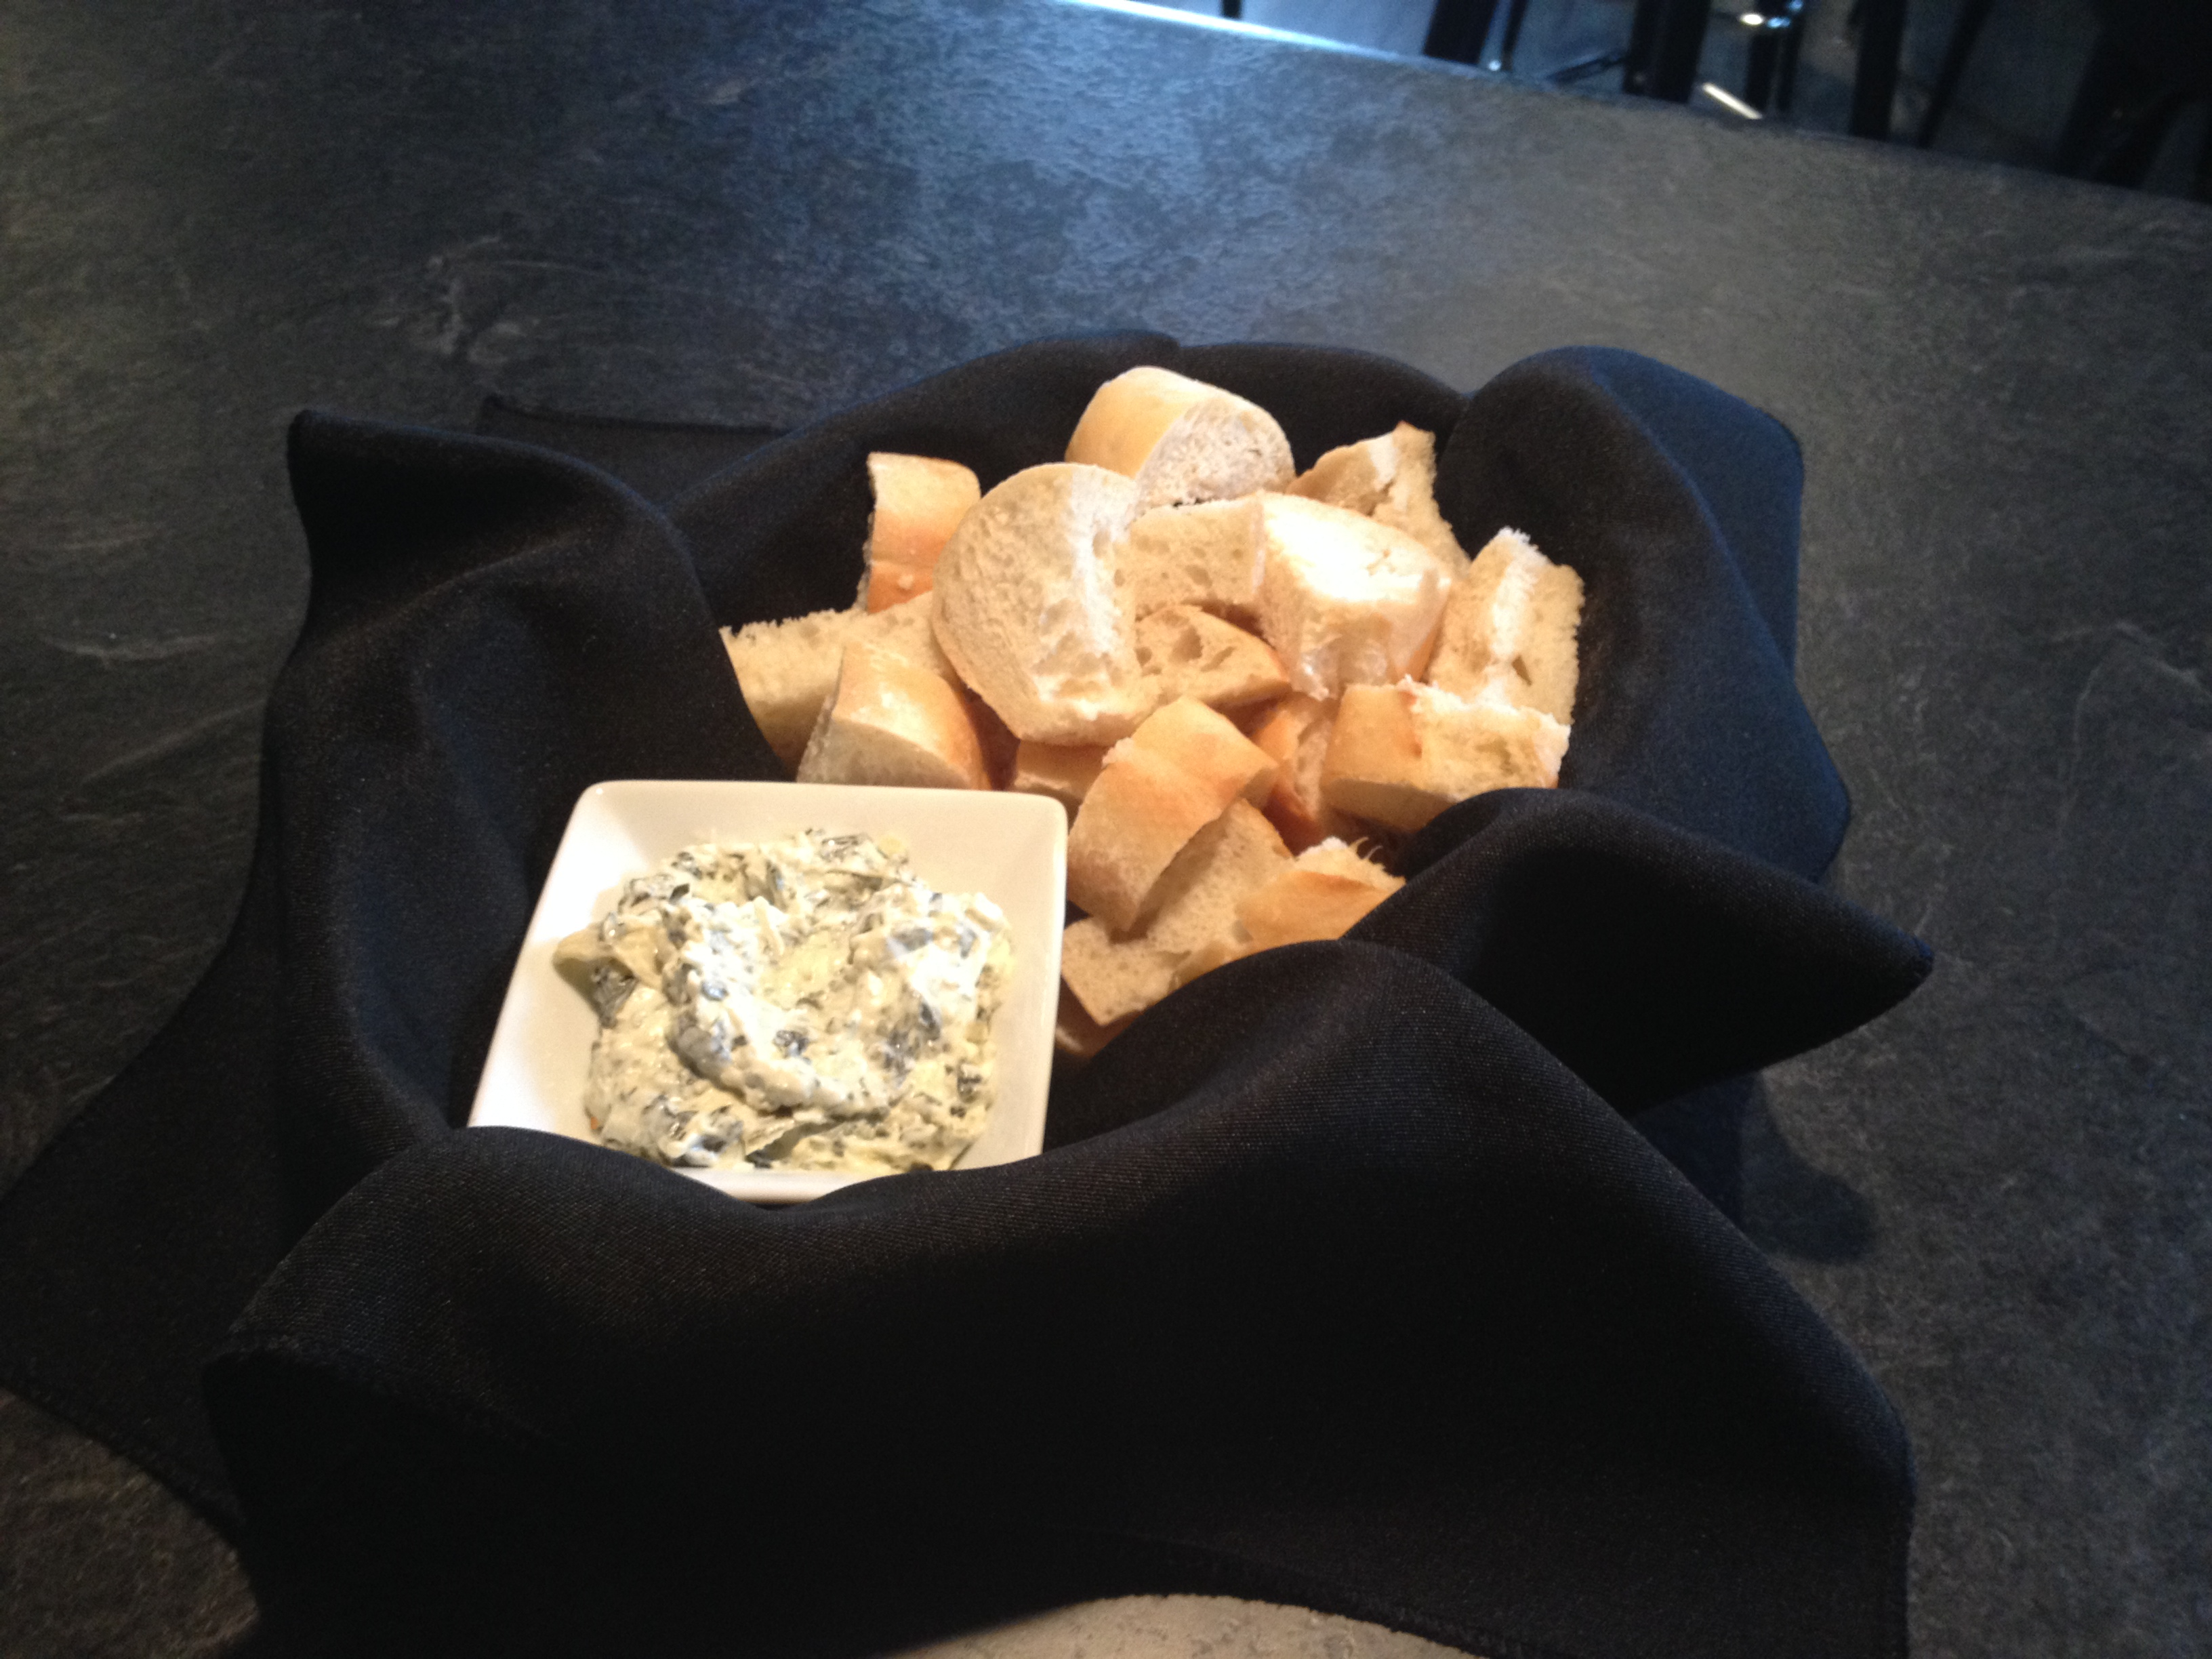 Bread with Spinach Artichoke Dip